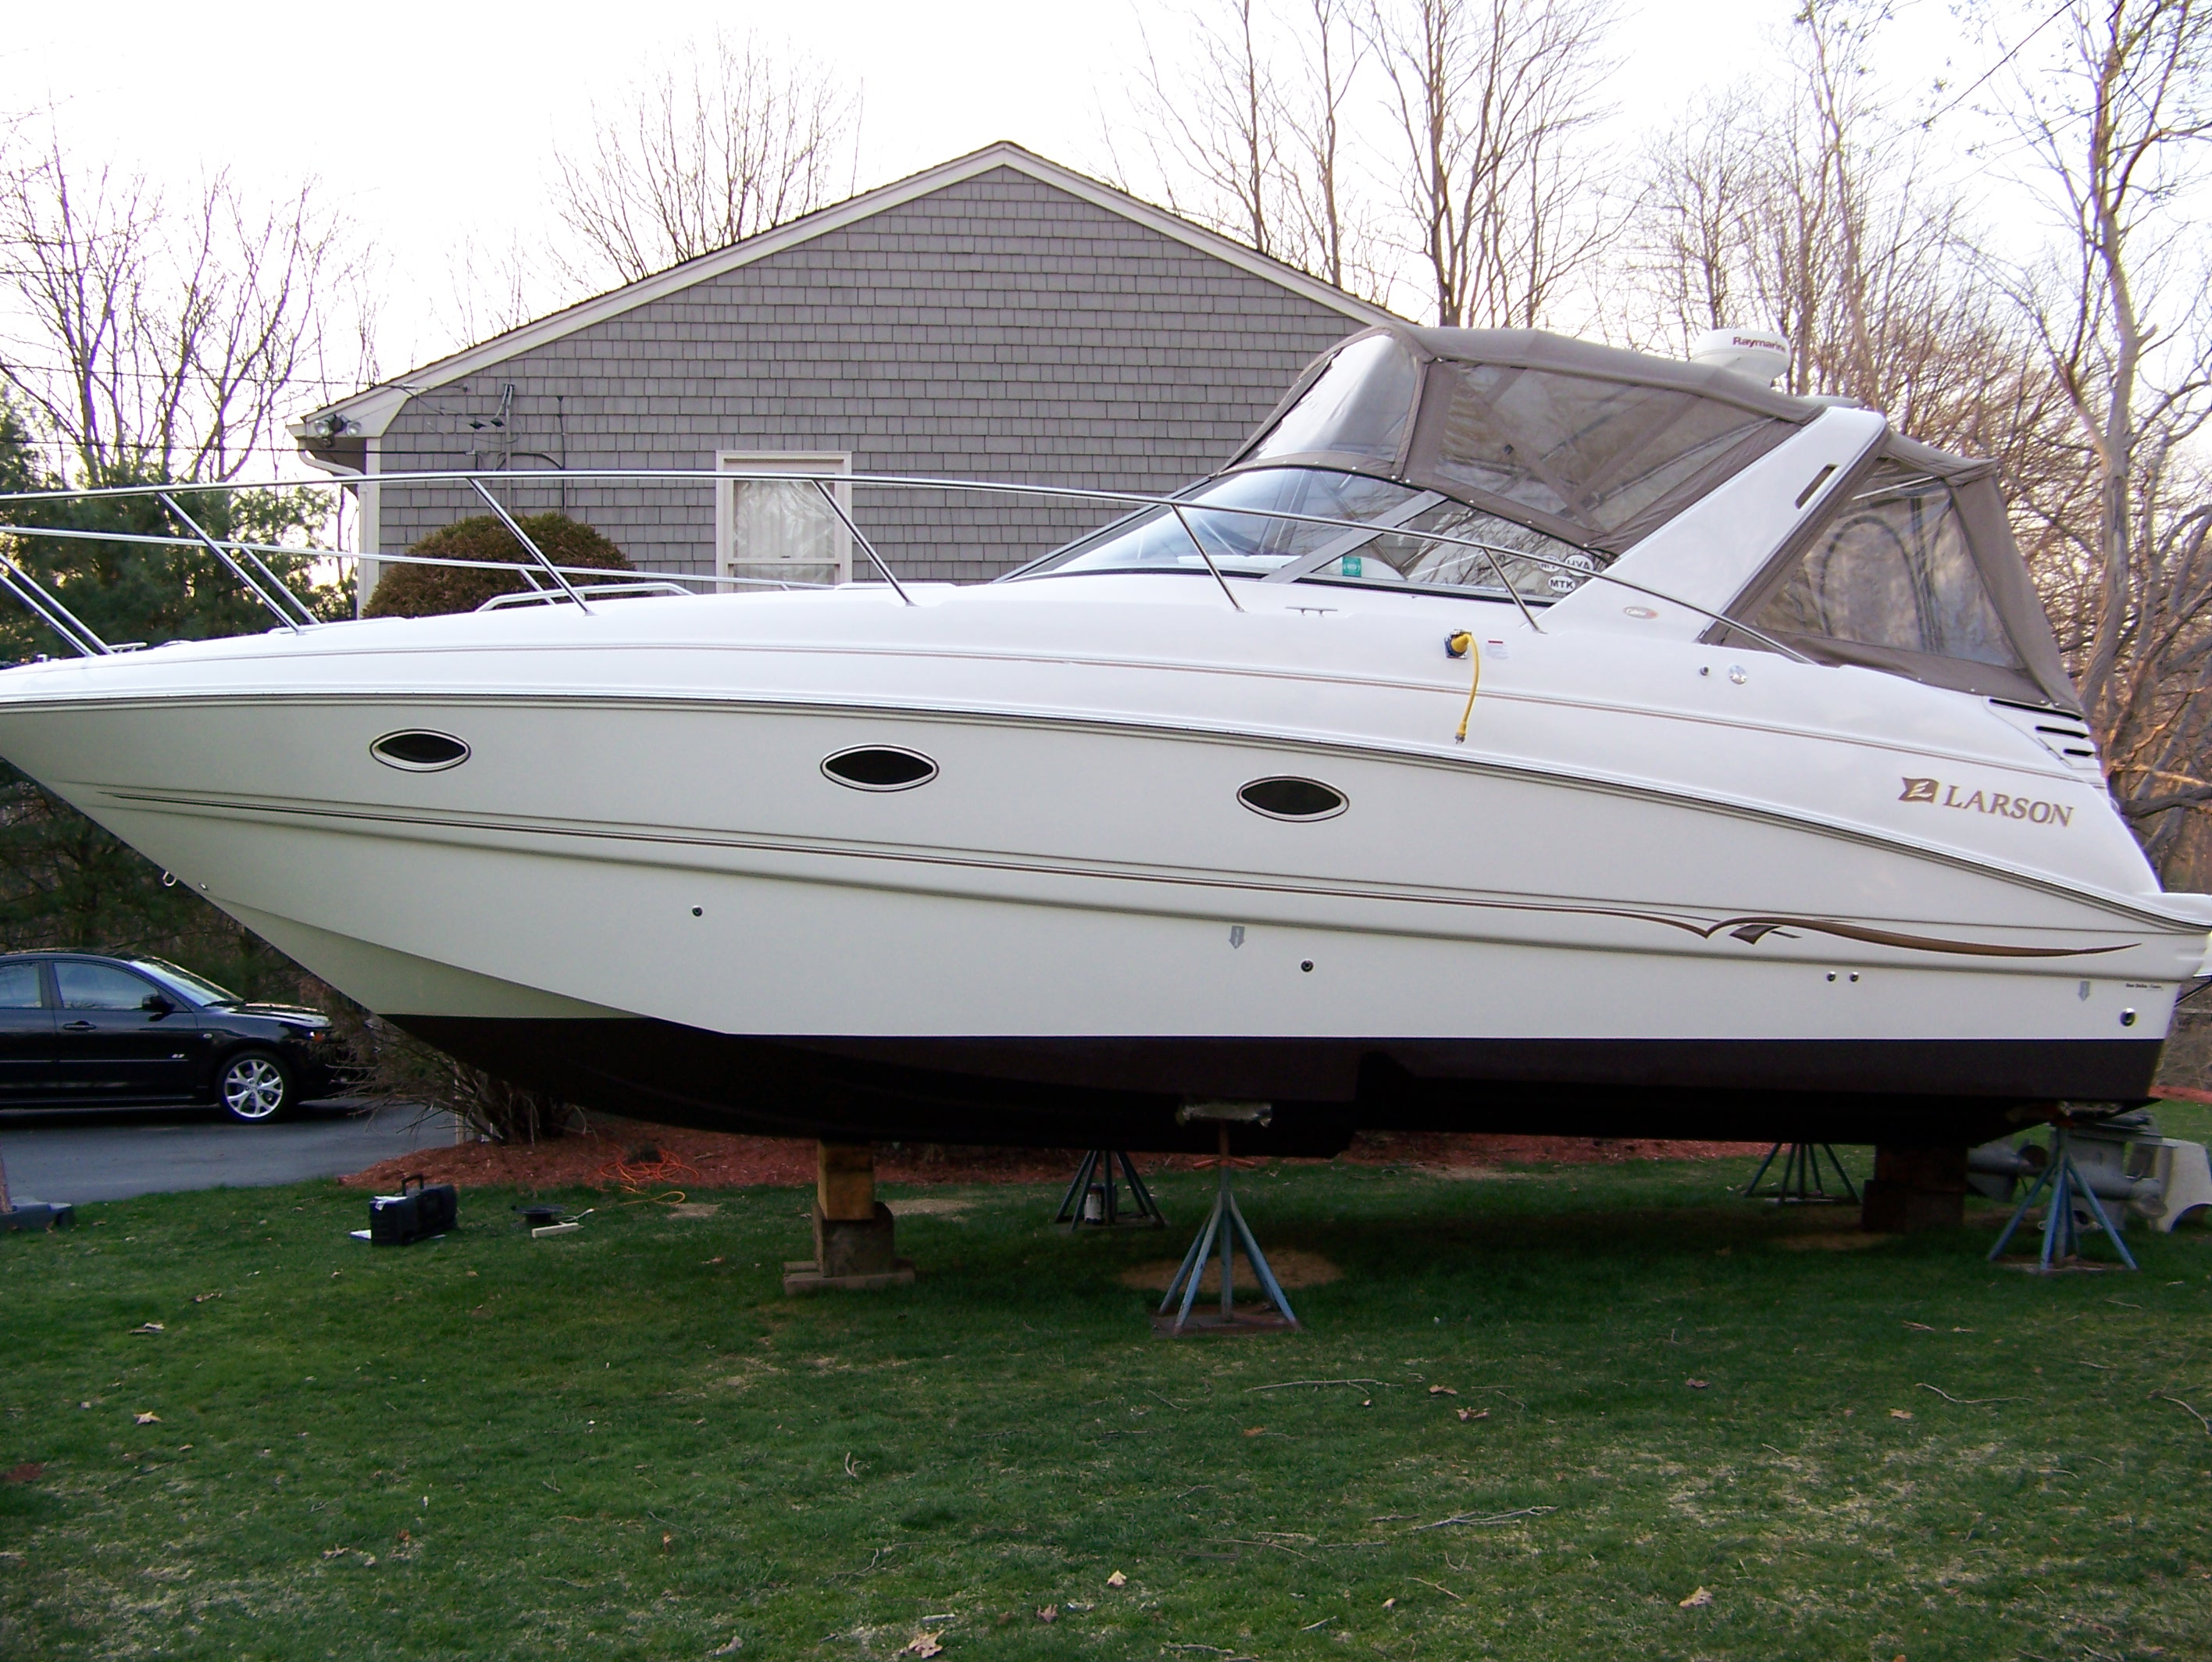 SCOTT'S BOAT SERVICE: BOTTOM PAINT PAGE